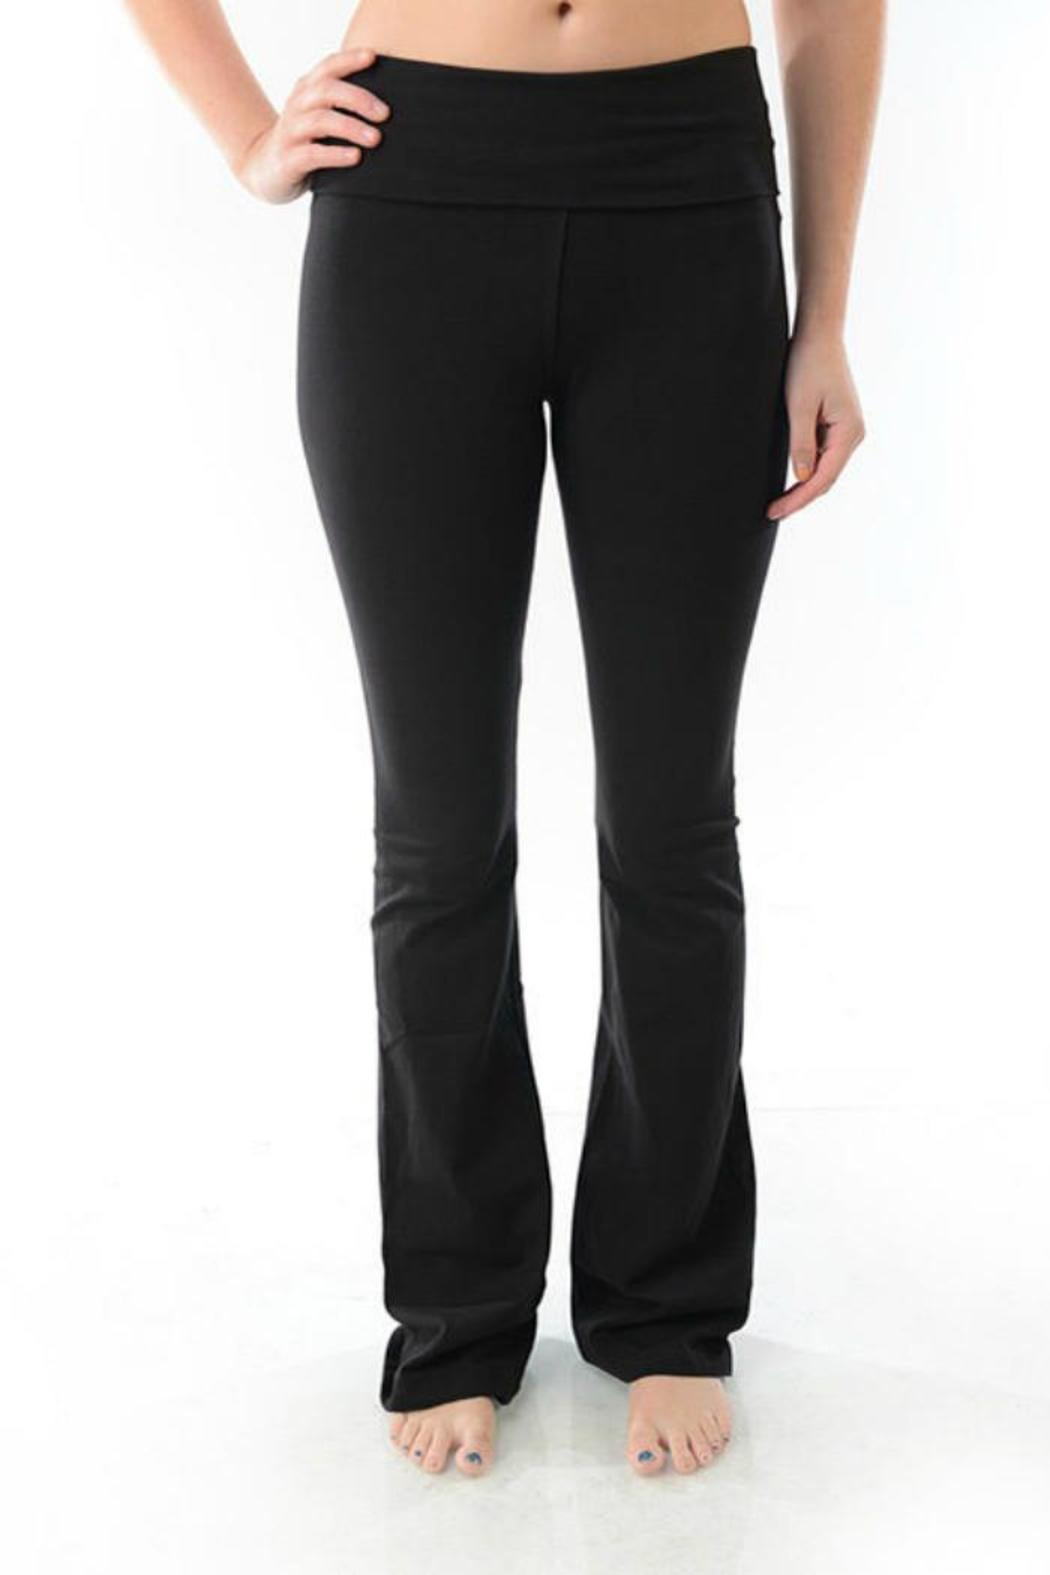 T Party Yoga Pants from Long Island by EPIC Stores — Shoptiques